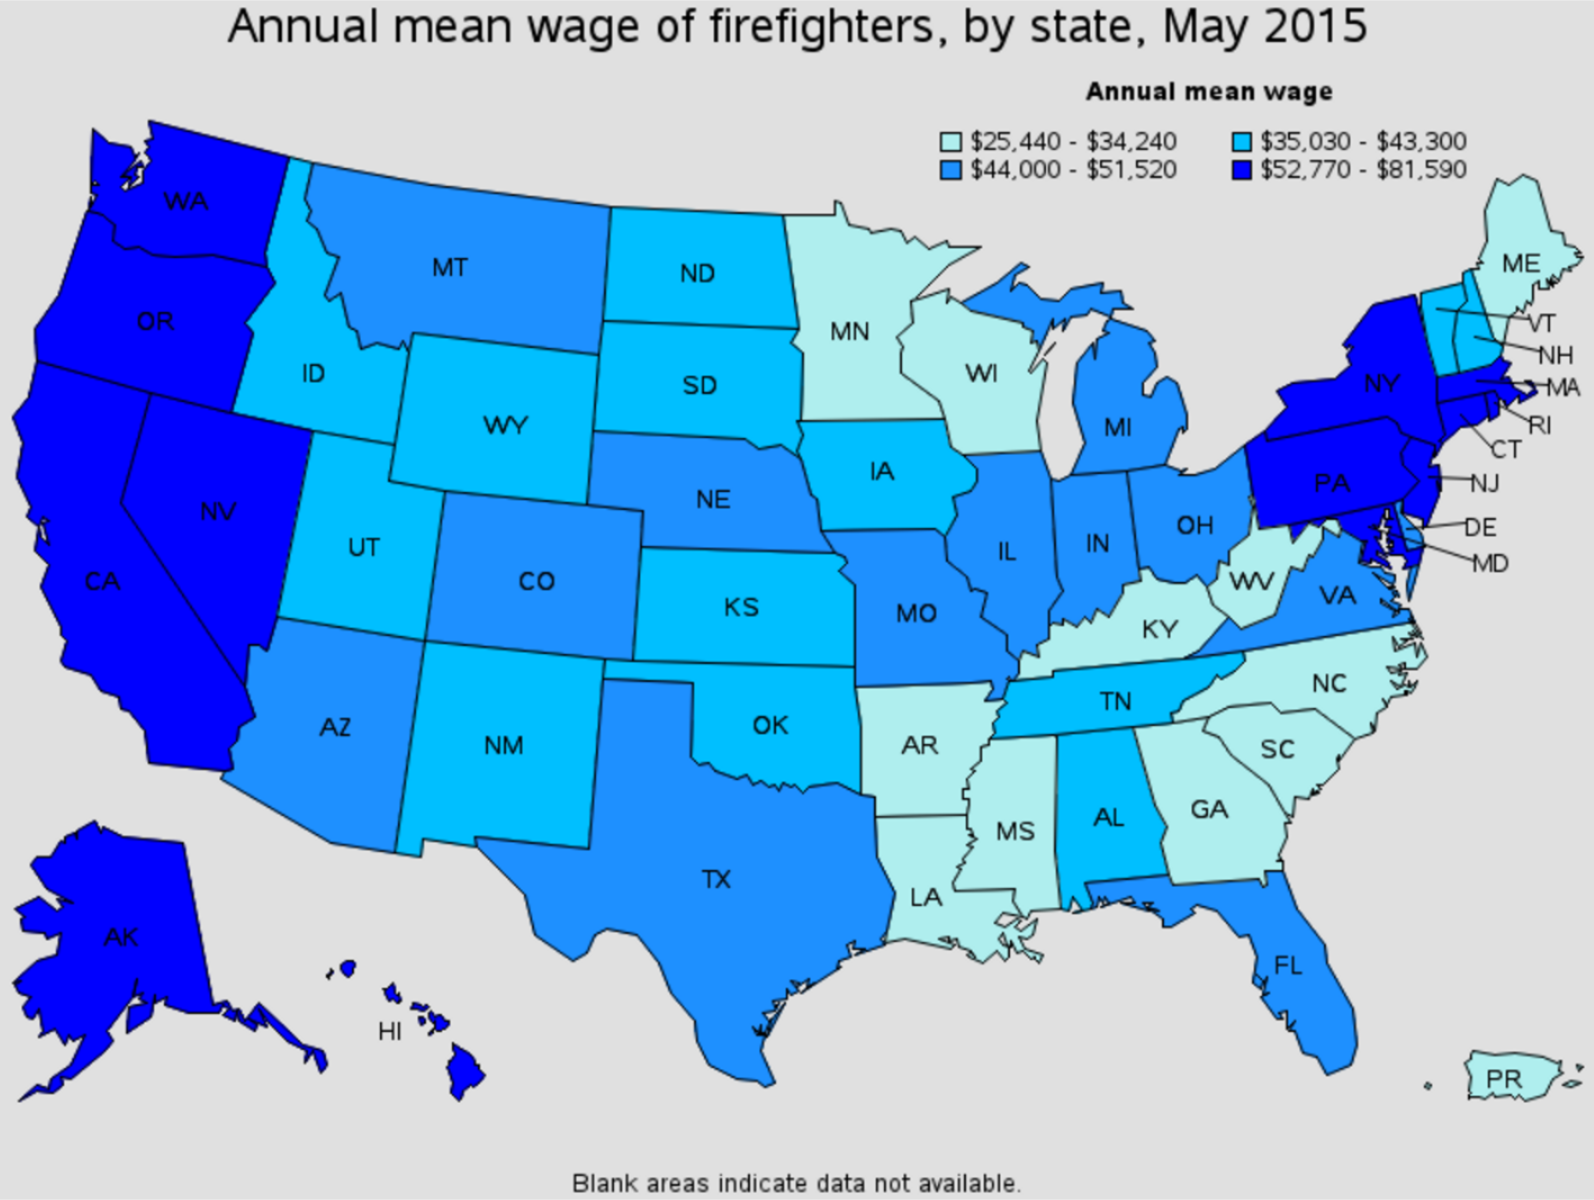 firefighter average salary by state Mc Keesport Pennsylvania